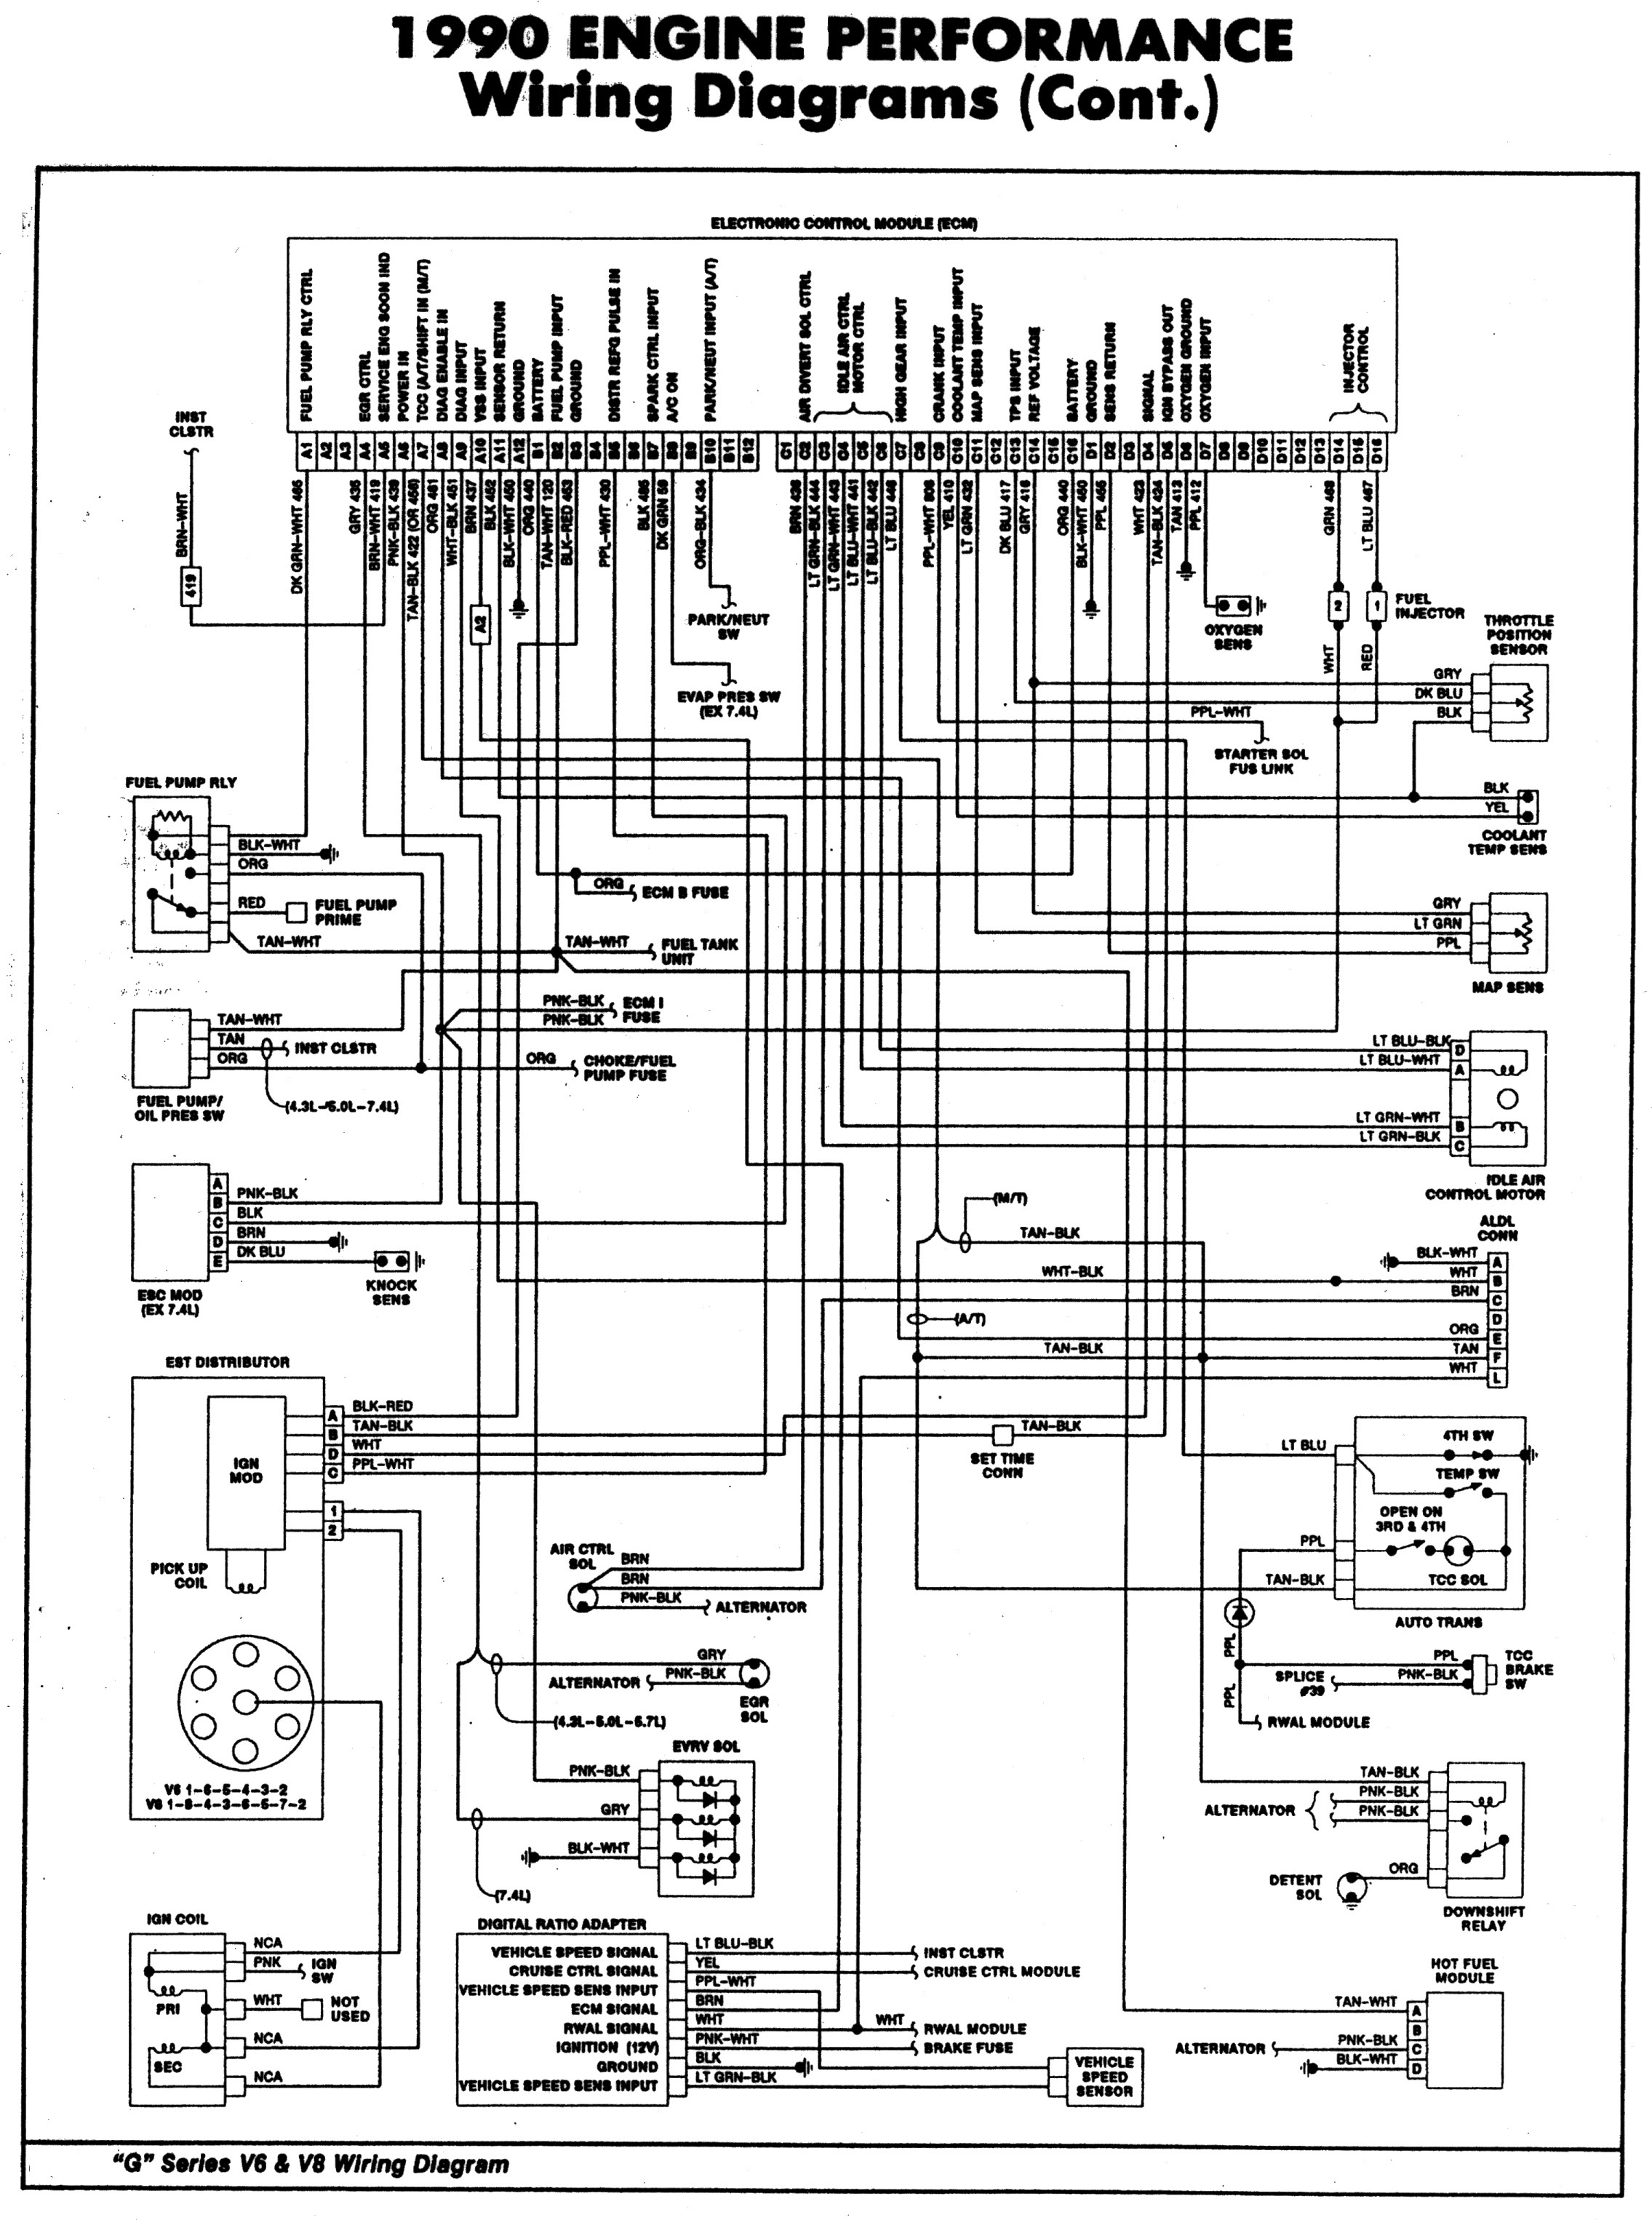 Chevy Iac Wiring - Wiring Diagram Progresif